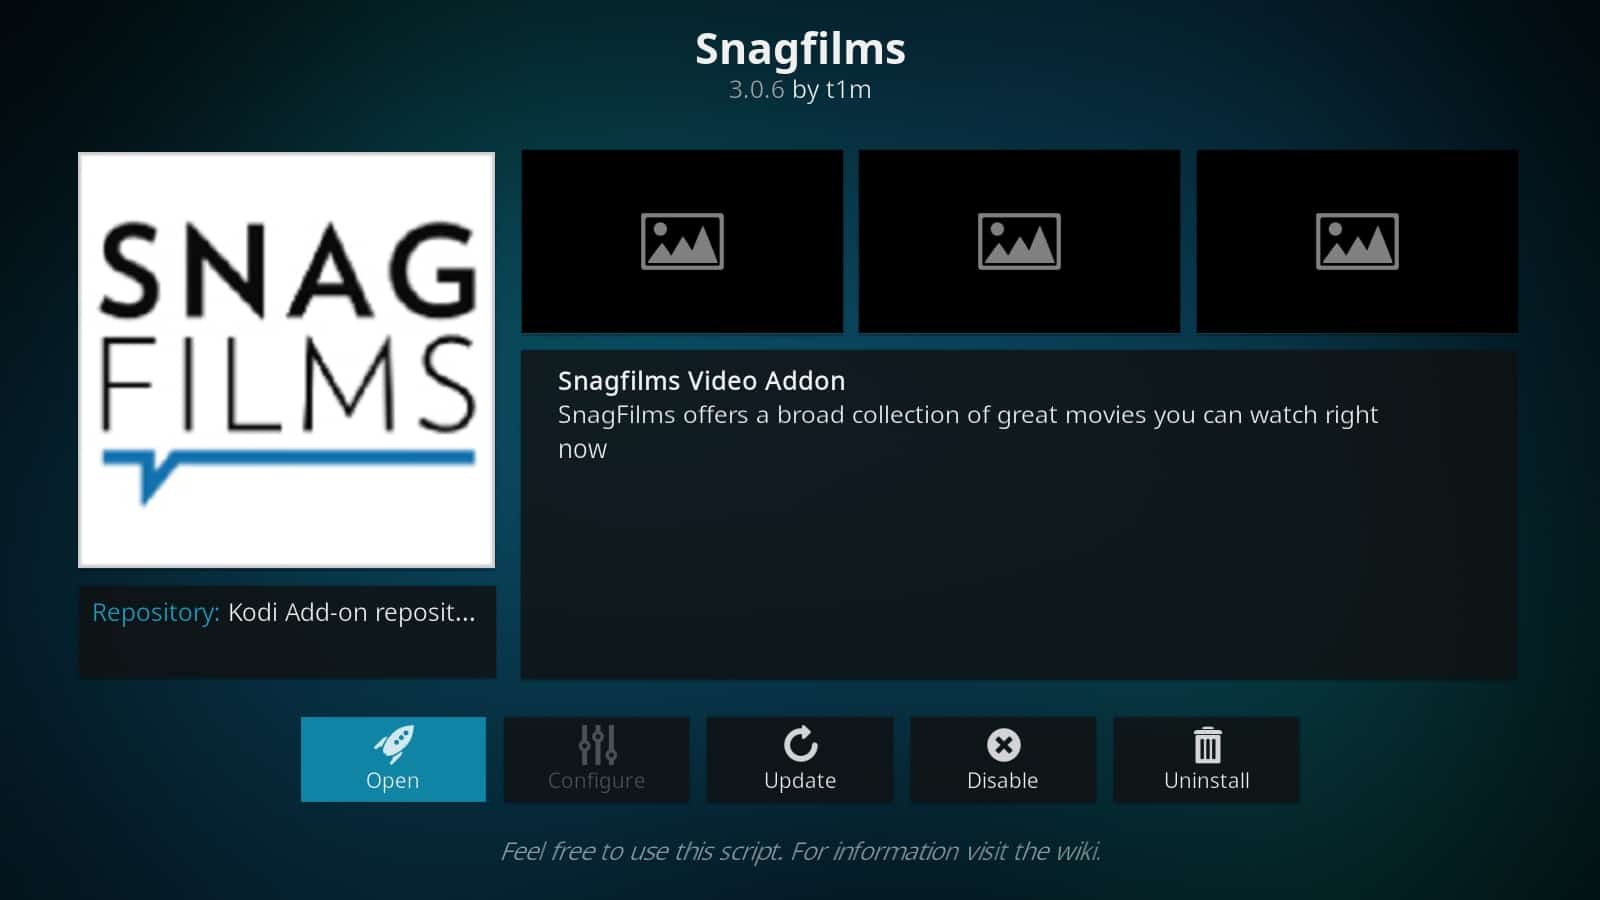 Snagfilms Is A Film And Tv Distribution Company With A Similar Business Model As Filmrise Like Filmrise Snagfilms Acquires Complete Movie And Tv Licenses